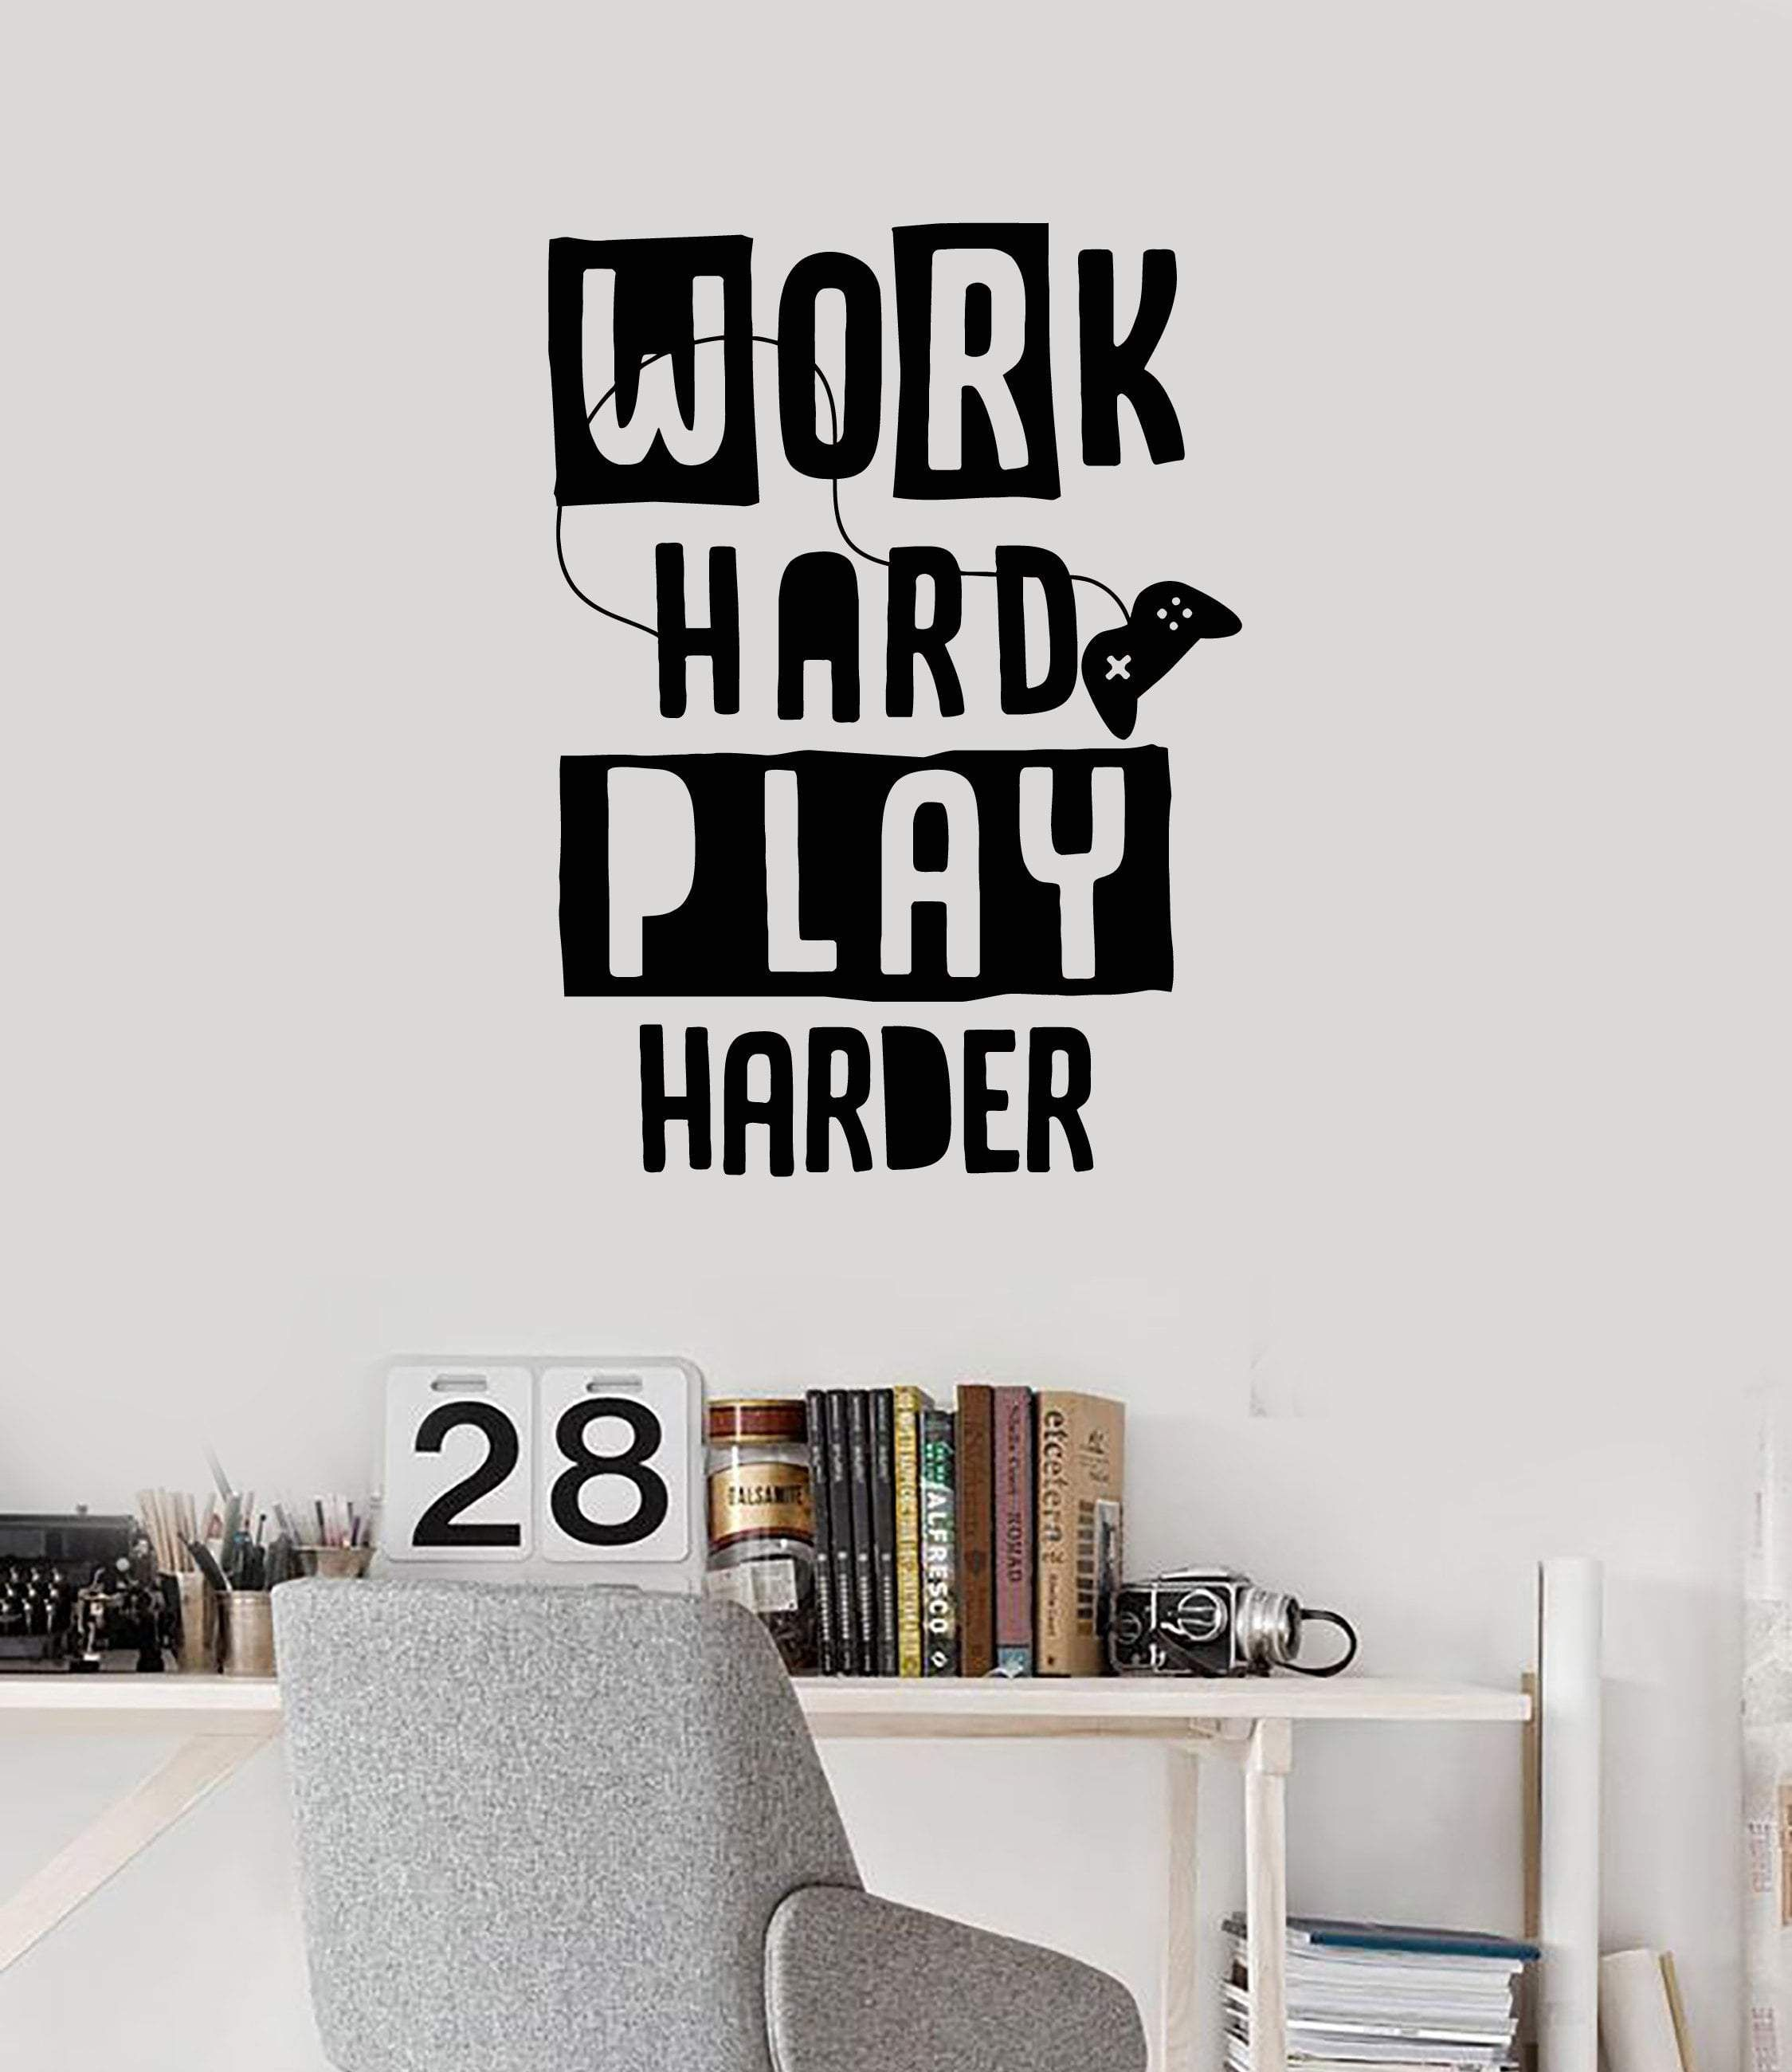 Gamer Quote Vinyl Wall Decal Video Game Work Hard Play Harder Art Stickers Mural Ig5308 Gamer Quotes Wall Decals Vinyl Wall Decals